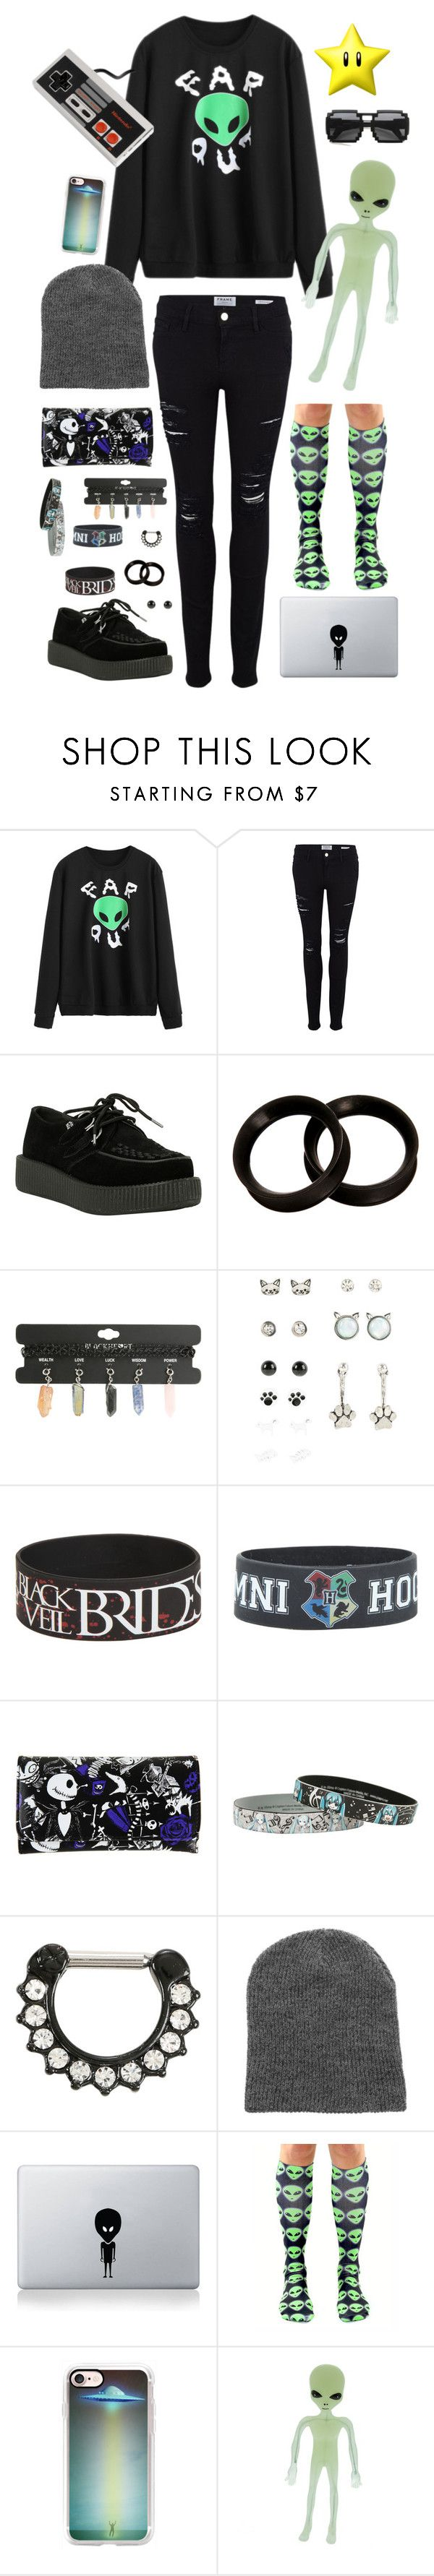 """alien?¿"" by plantttboy ❤ liked on Polyvore featuring Frame, T.U.K., Disney, Vinyl Revolution, Casetify, ZeroUV, Nintendo, emo, hottopic and space"